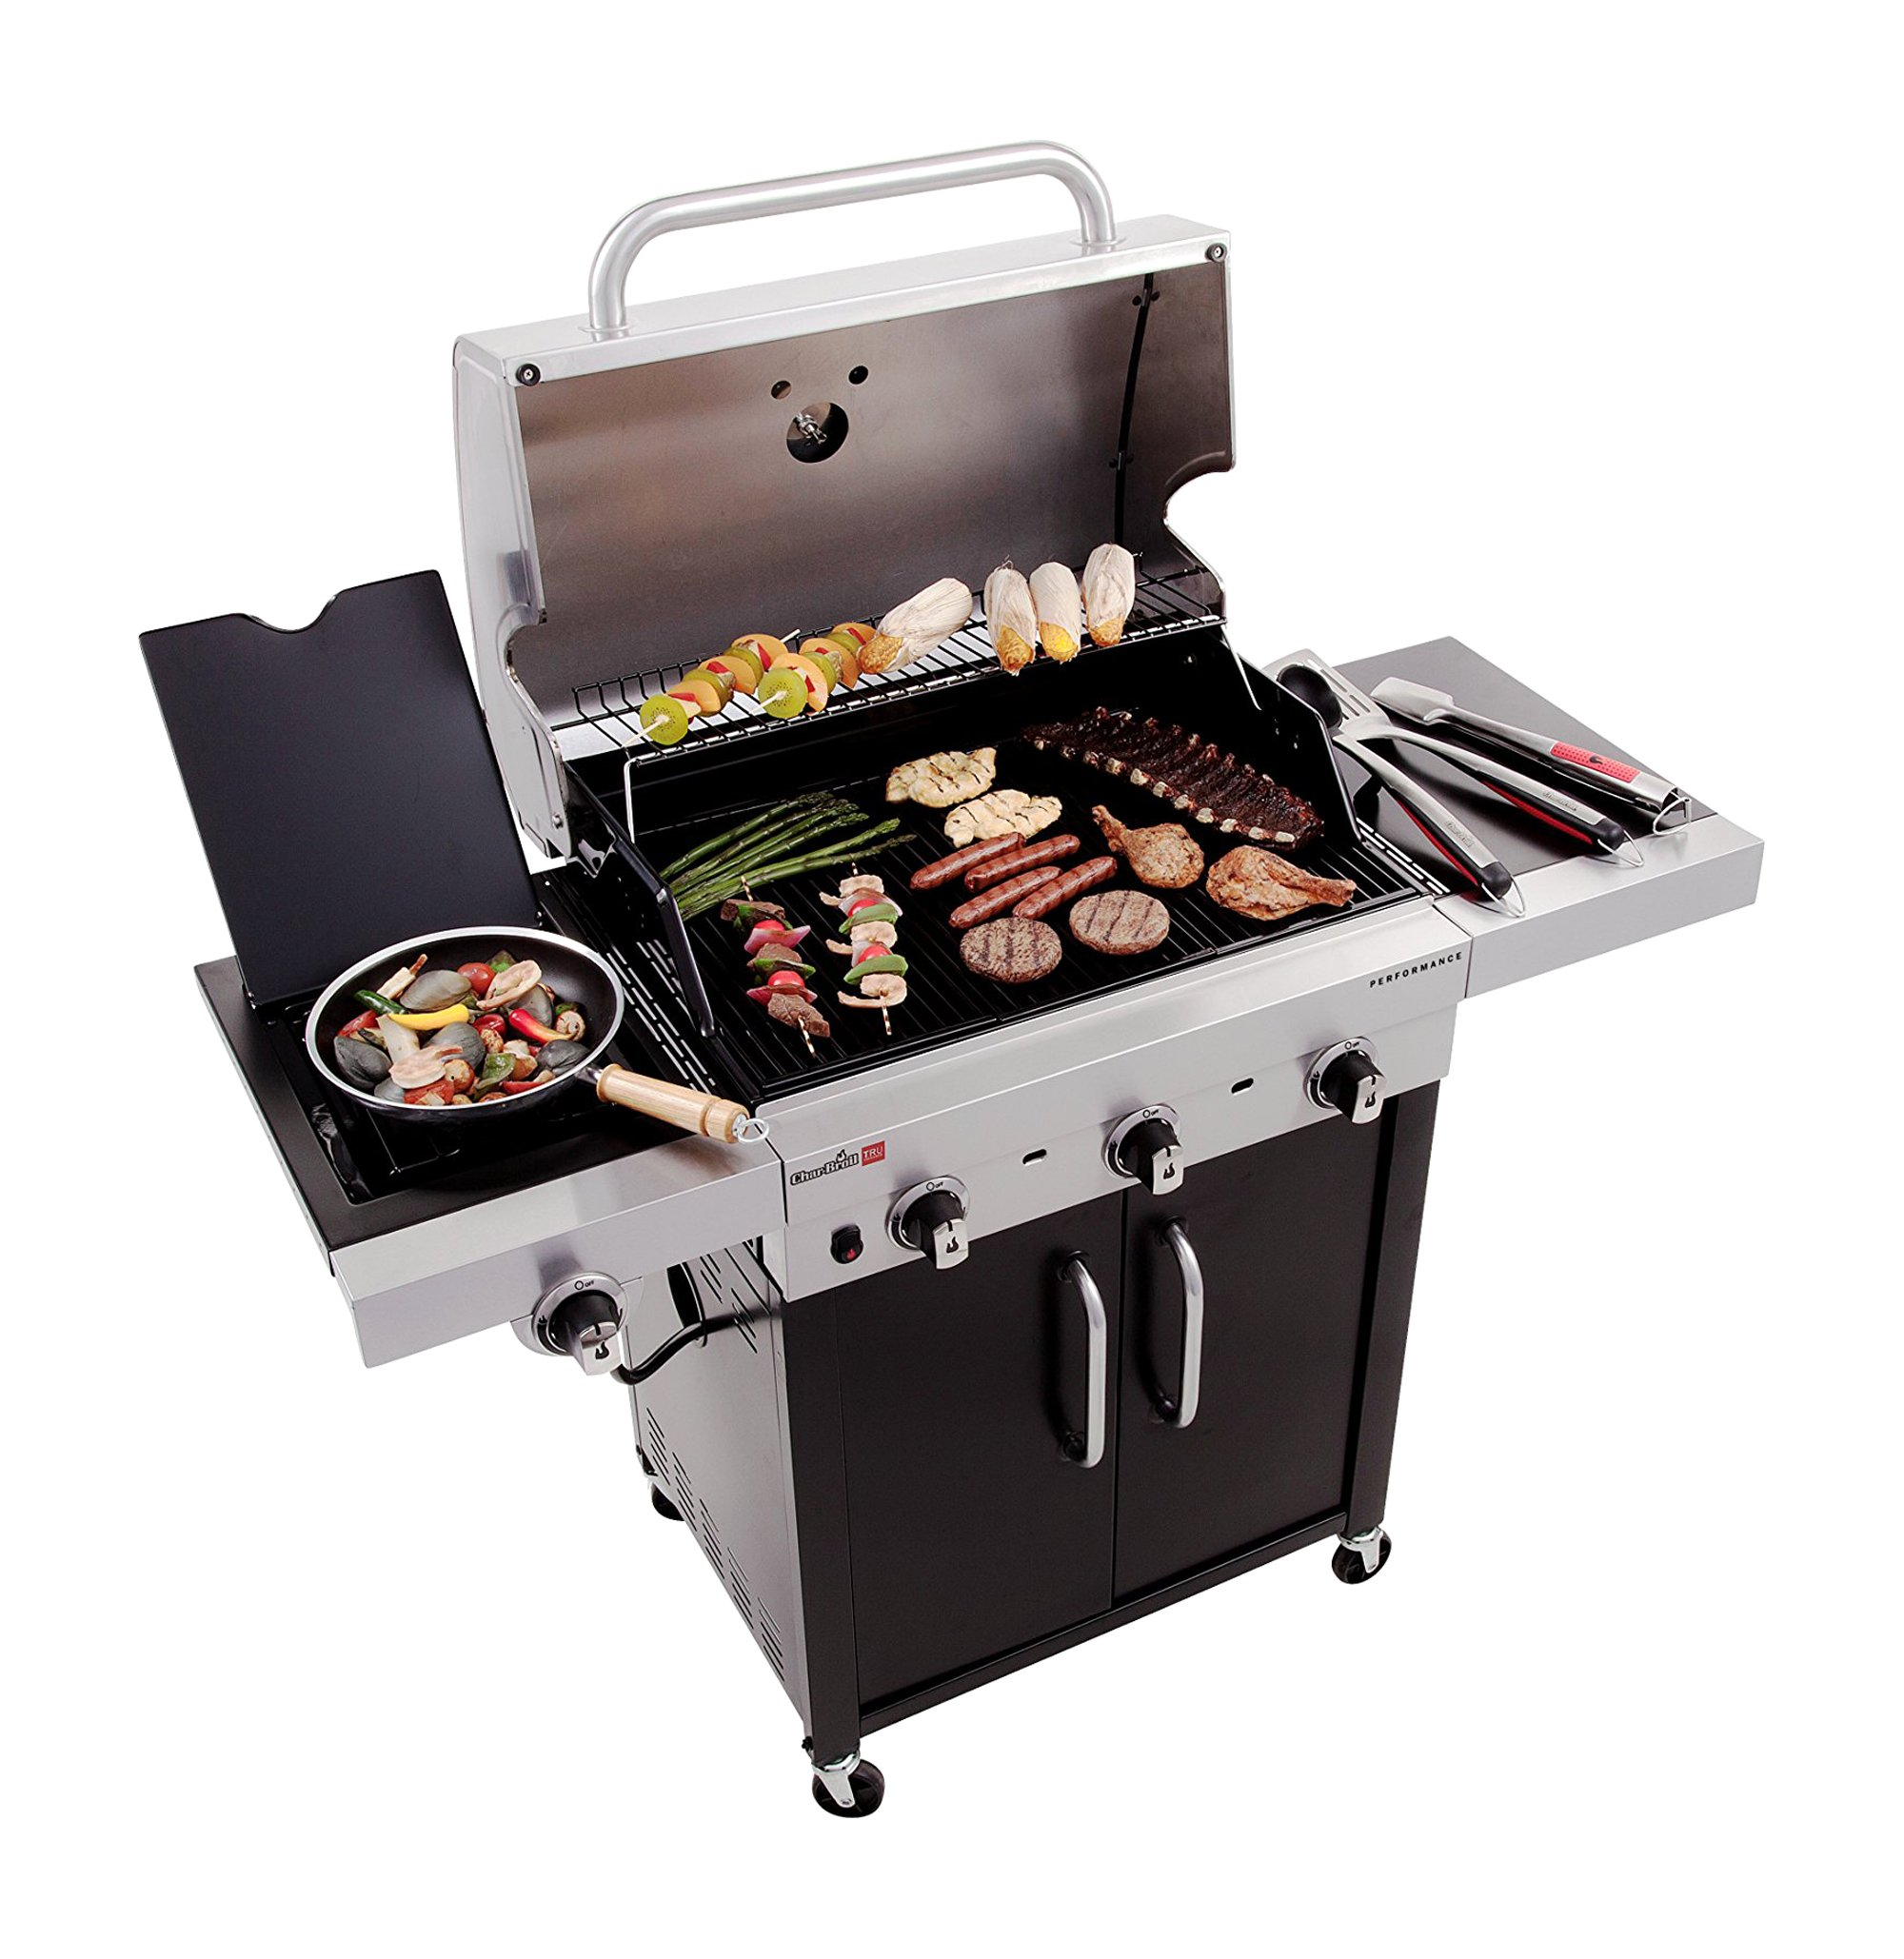 Char-Broil Performance TRU-Infrared 450 3-Burner Cabinet Liquid Propane Gas Grill by Char-Broil (Image #4)